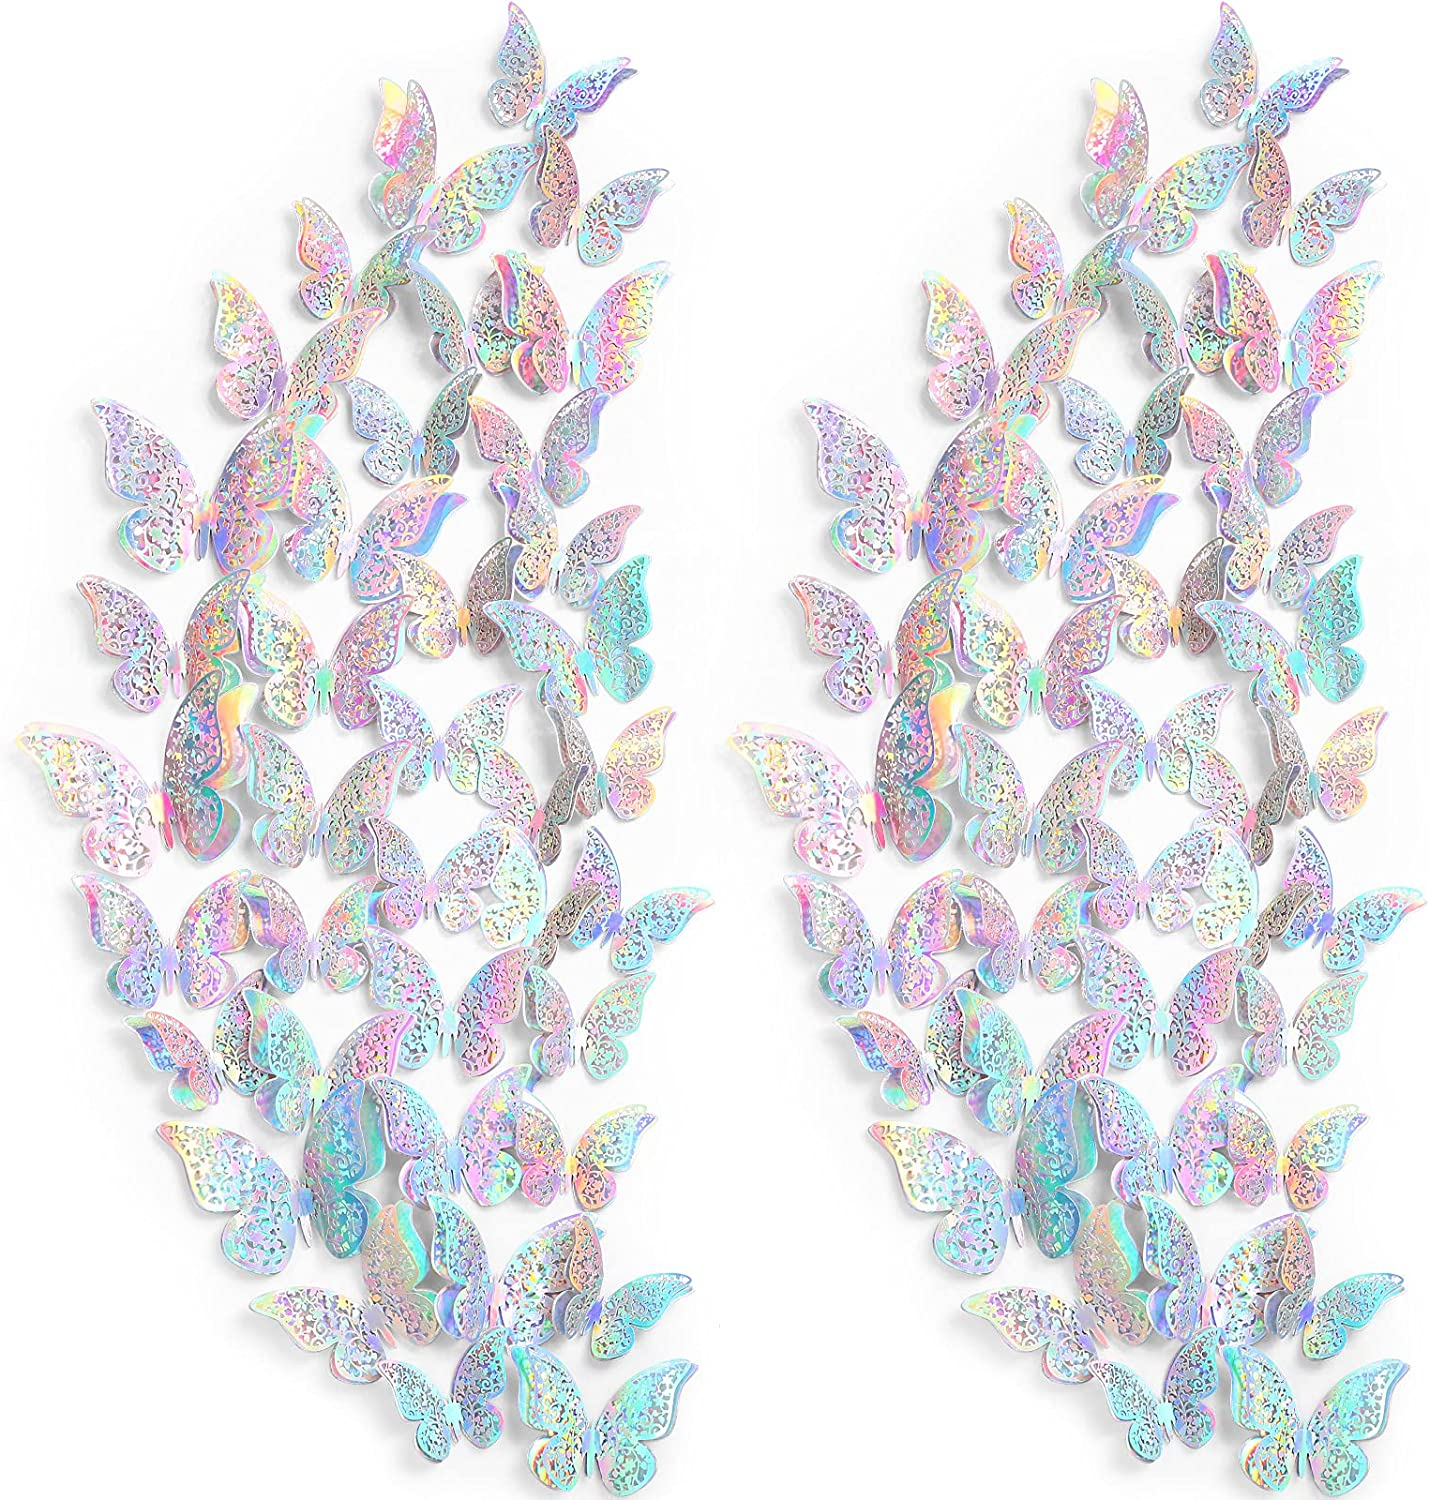 120 Pieces 60 Pairs 3D Layered Butterfly Wall Decor Removable Butterfly Stickers Hollow Mural Decals DIY Decorative Wall Art Crafts for Baby Room Home Wedding Decor (Holographic Silver)